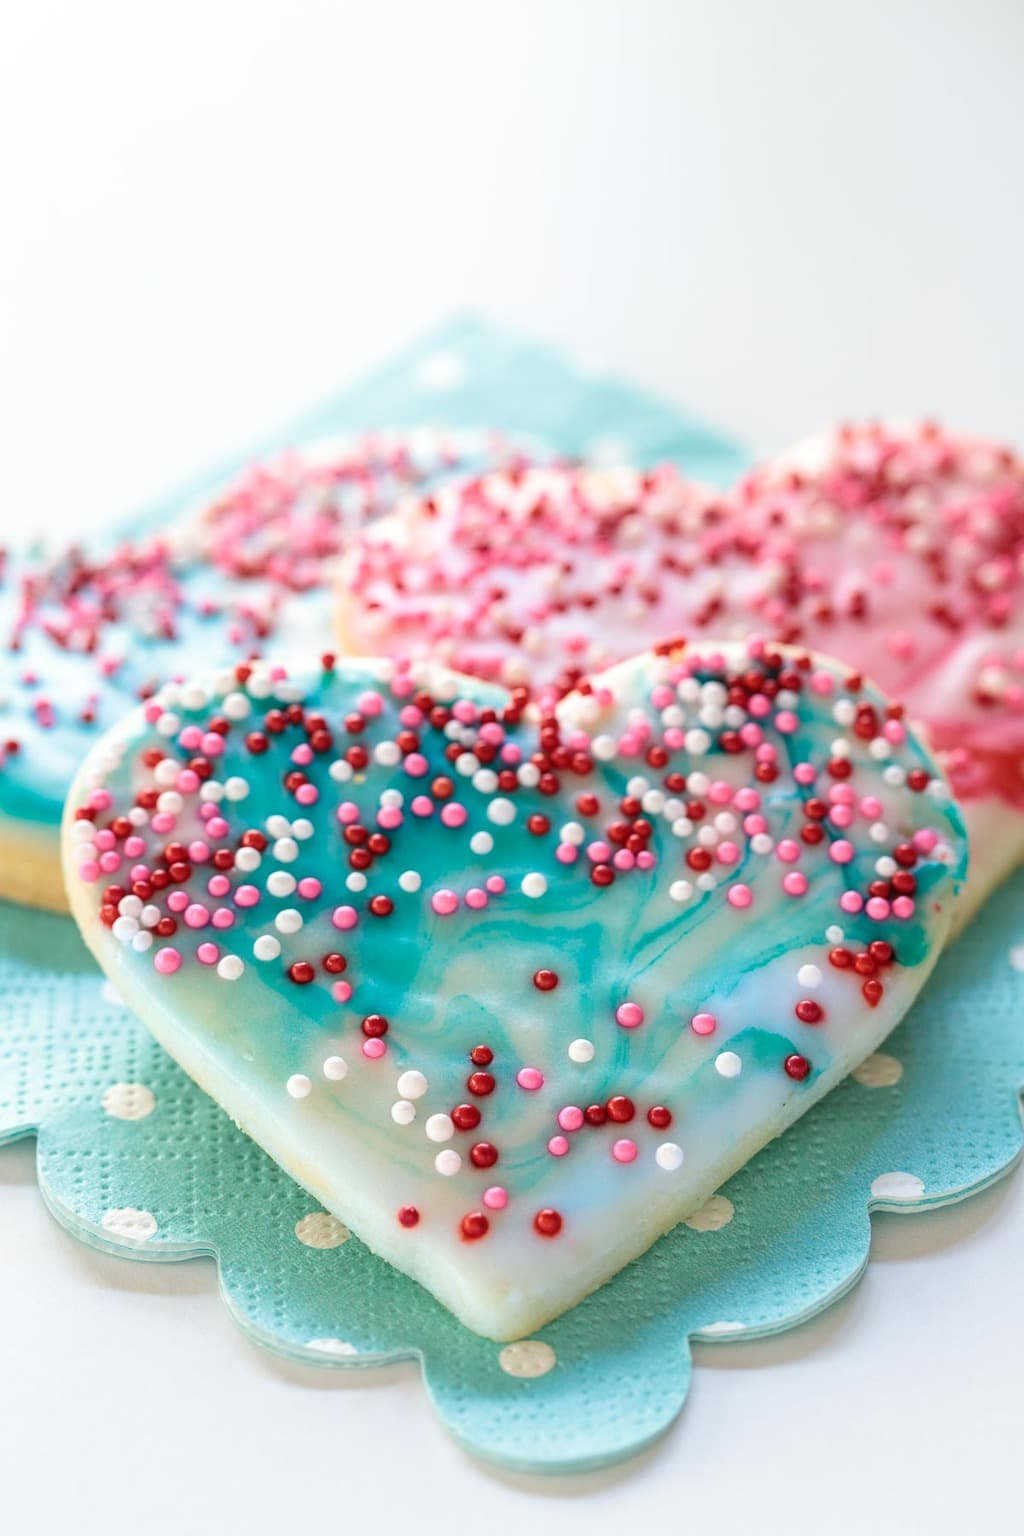 Foto aérea de Easy Decorated Valentine's Cookies en una servilleta turquesa punteada.